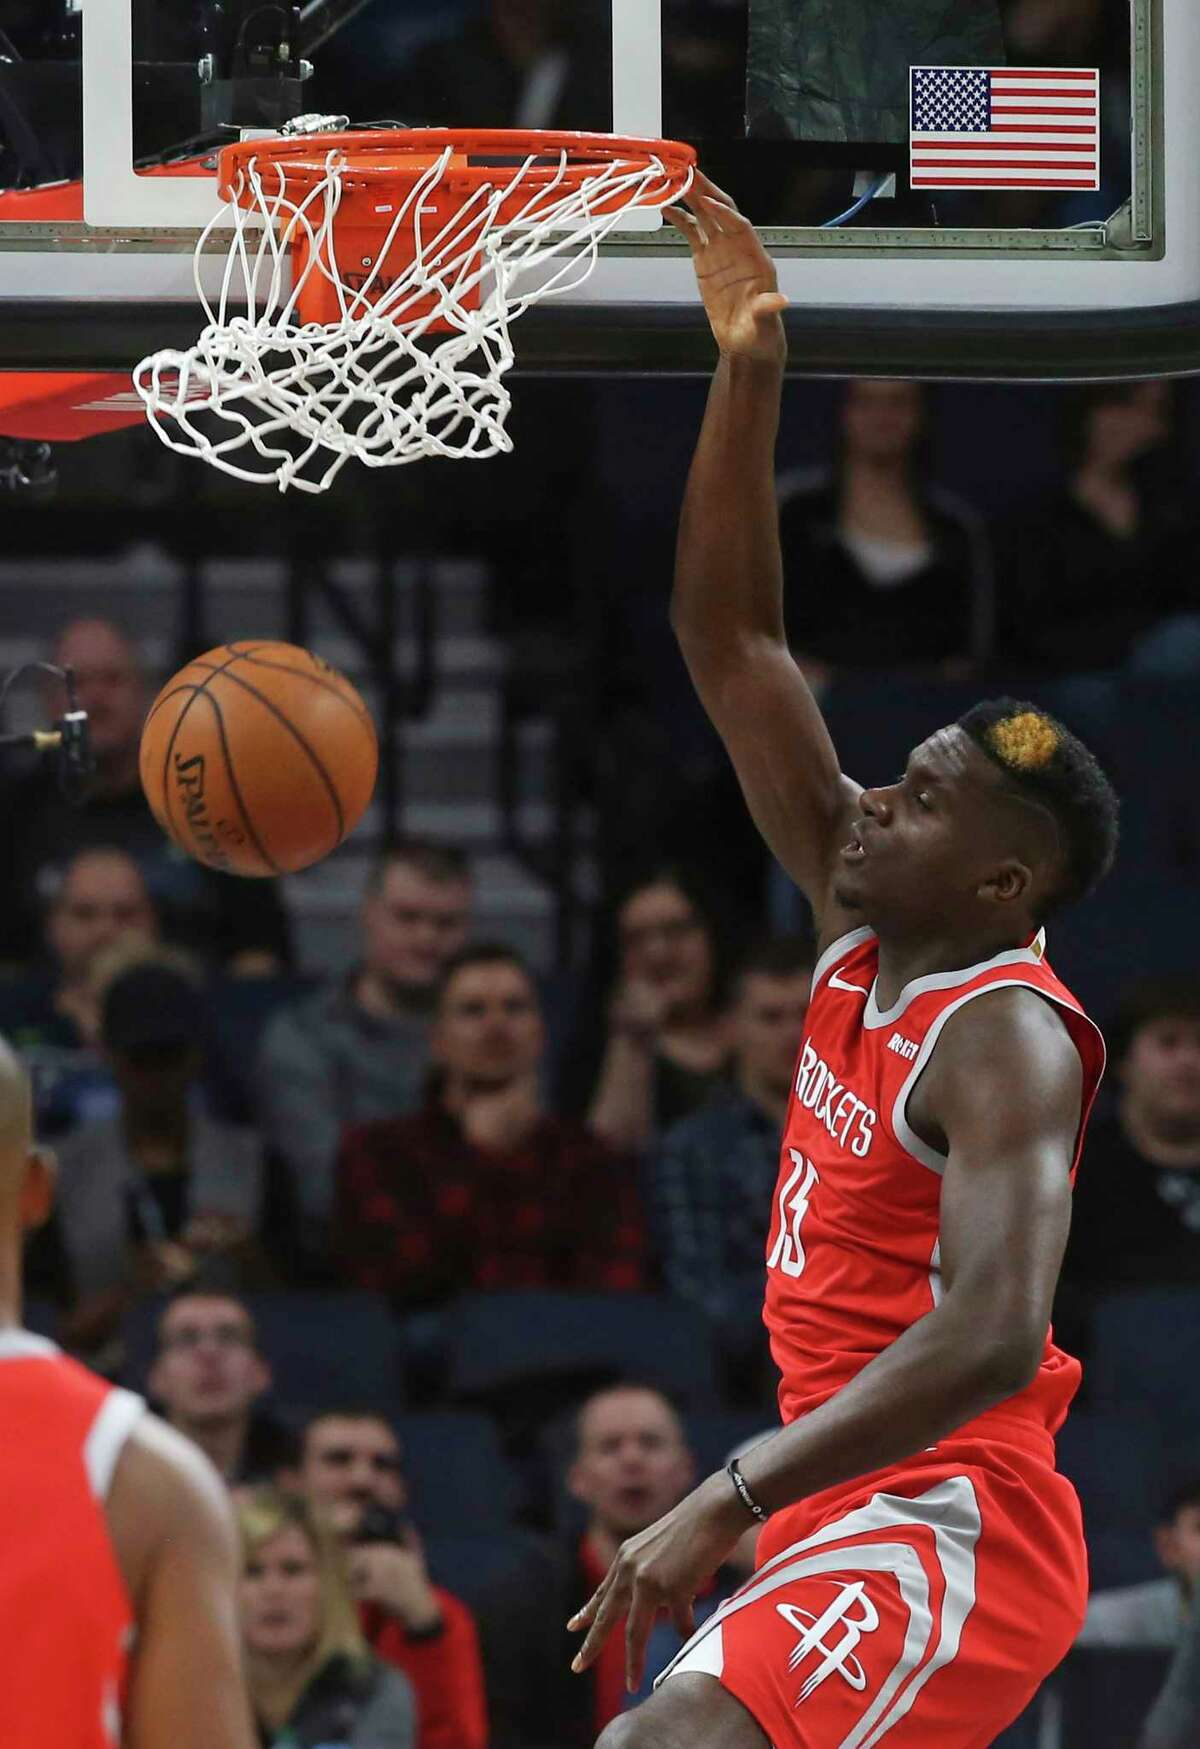 Houston Rockets' Clint Capela of Switzerland dunks against the Minnesota Timberwolves in the first half of an NBA basketball game Monday, Dec. 3, 2018, in Minneapolis. (AP Photo/Jim Mone)